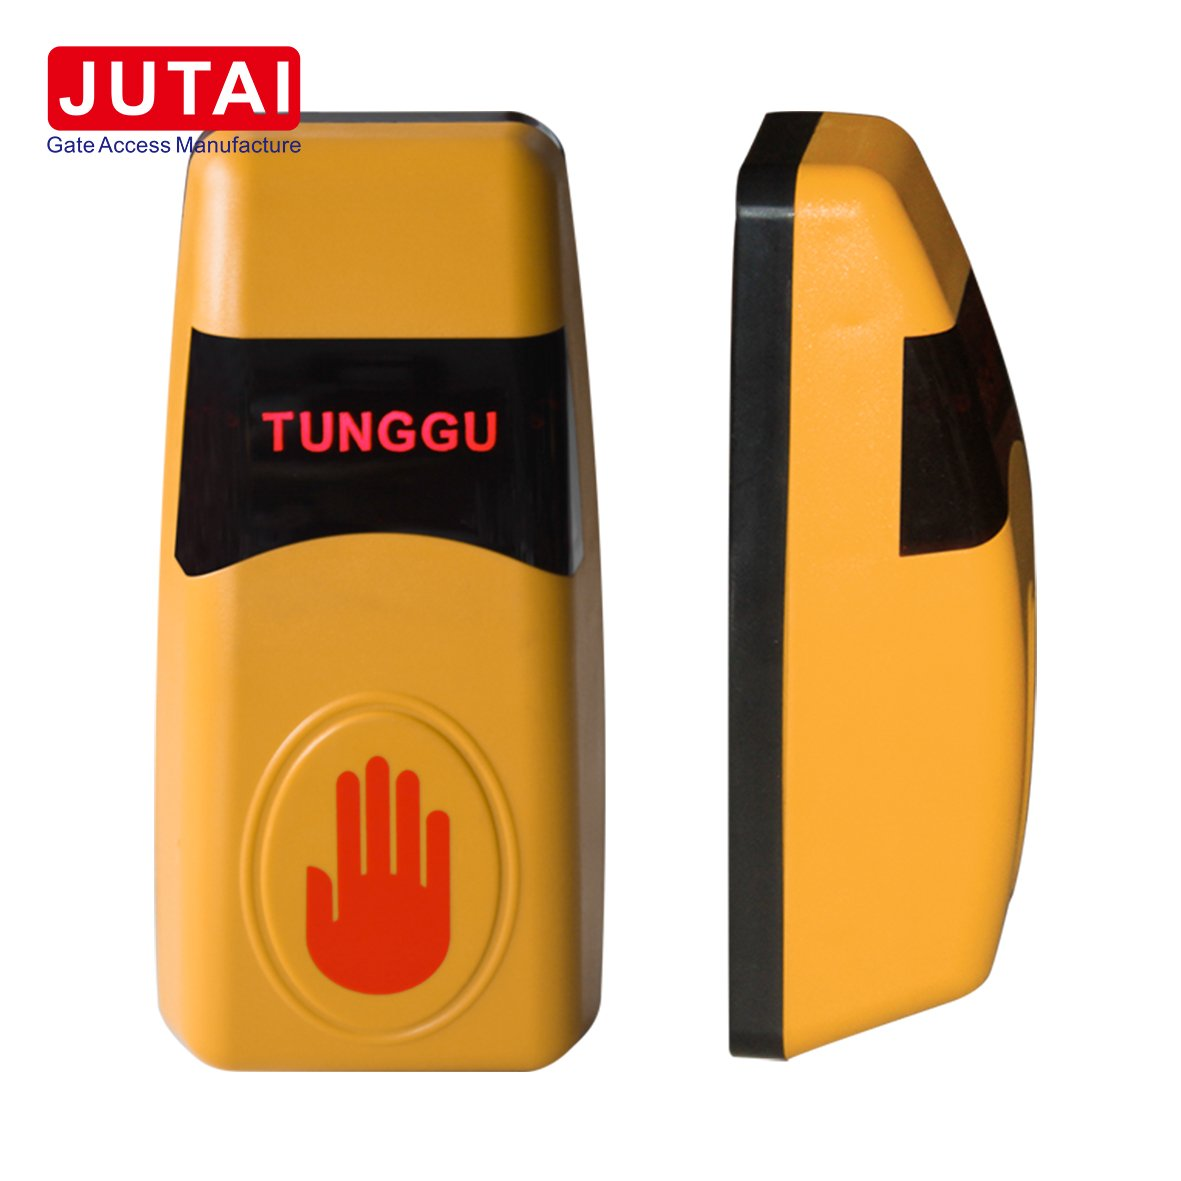 Capteur infrarouge de porte JUTAI JT-THE bouton de sortie sans contact